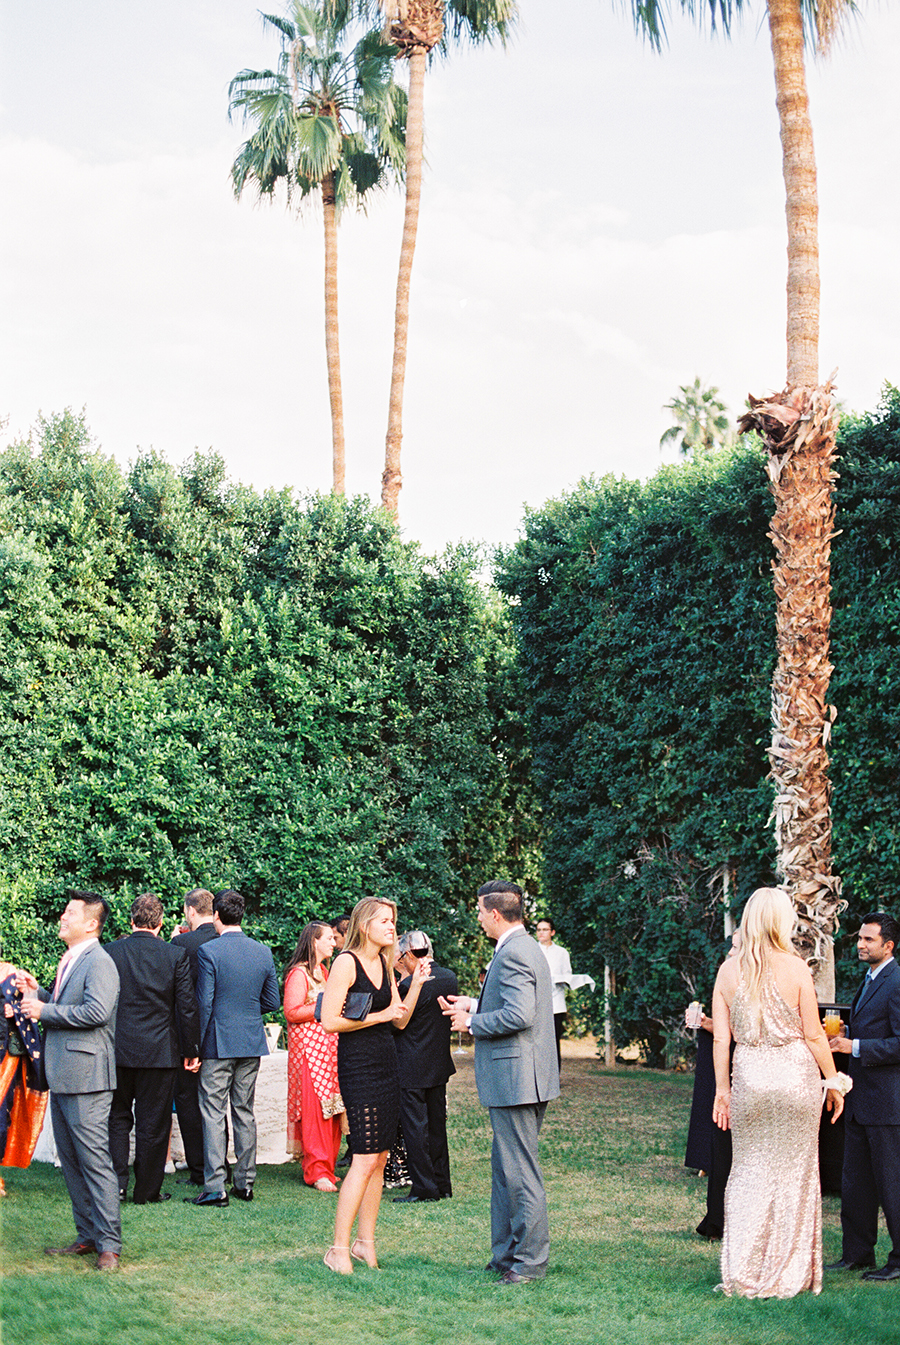 PARKER_PALMSPRING_WEDDING_SALLY_PINERA_PHOTOGRAPHY-629.jpg